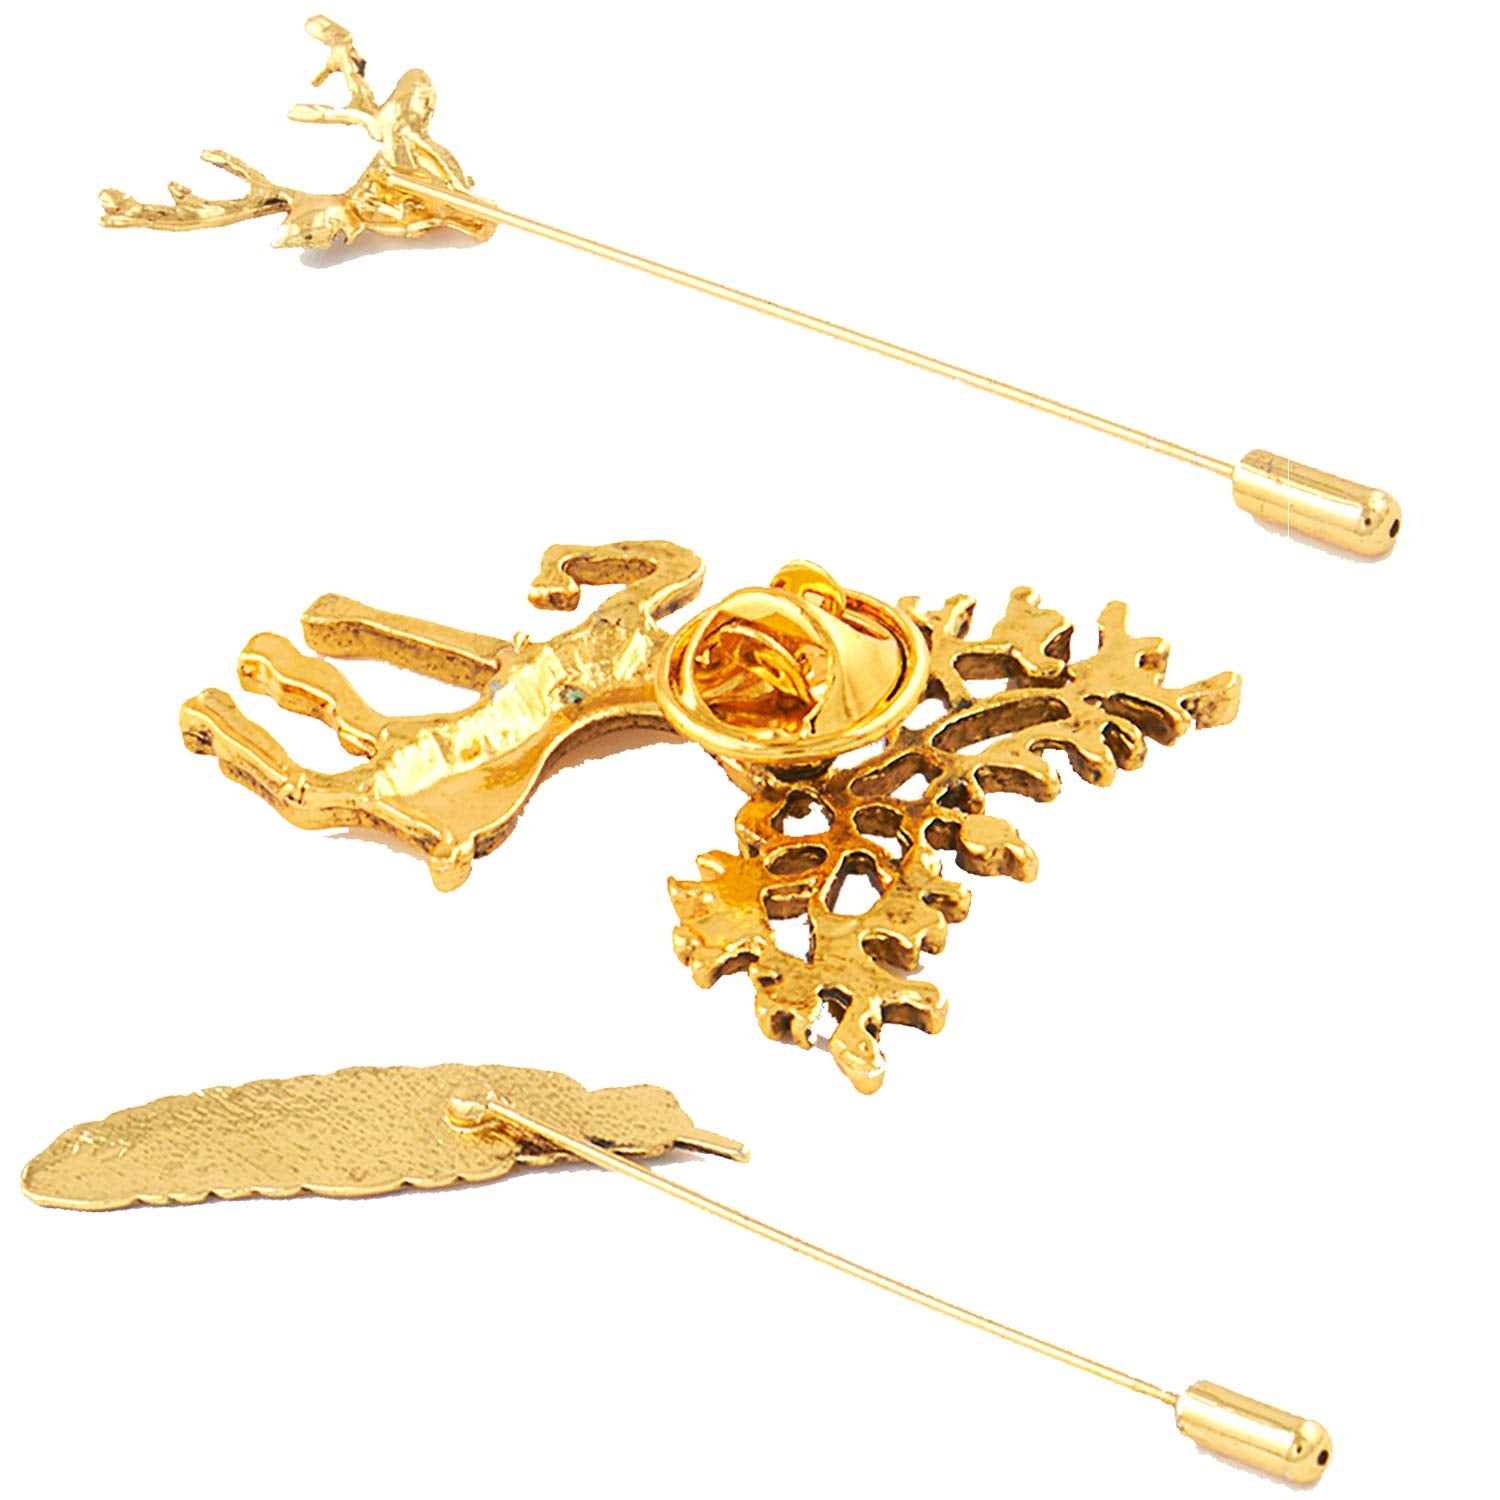 Combo of Antique Golden Lapel Pin Brooch/Shirt Stud